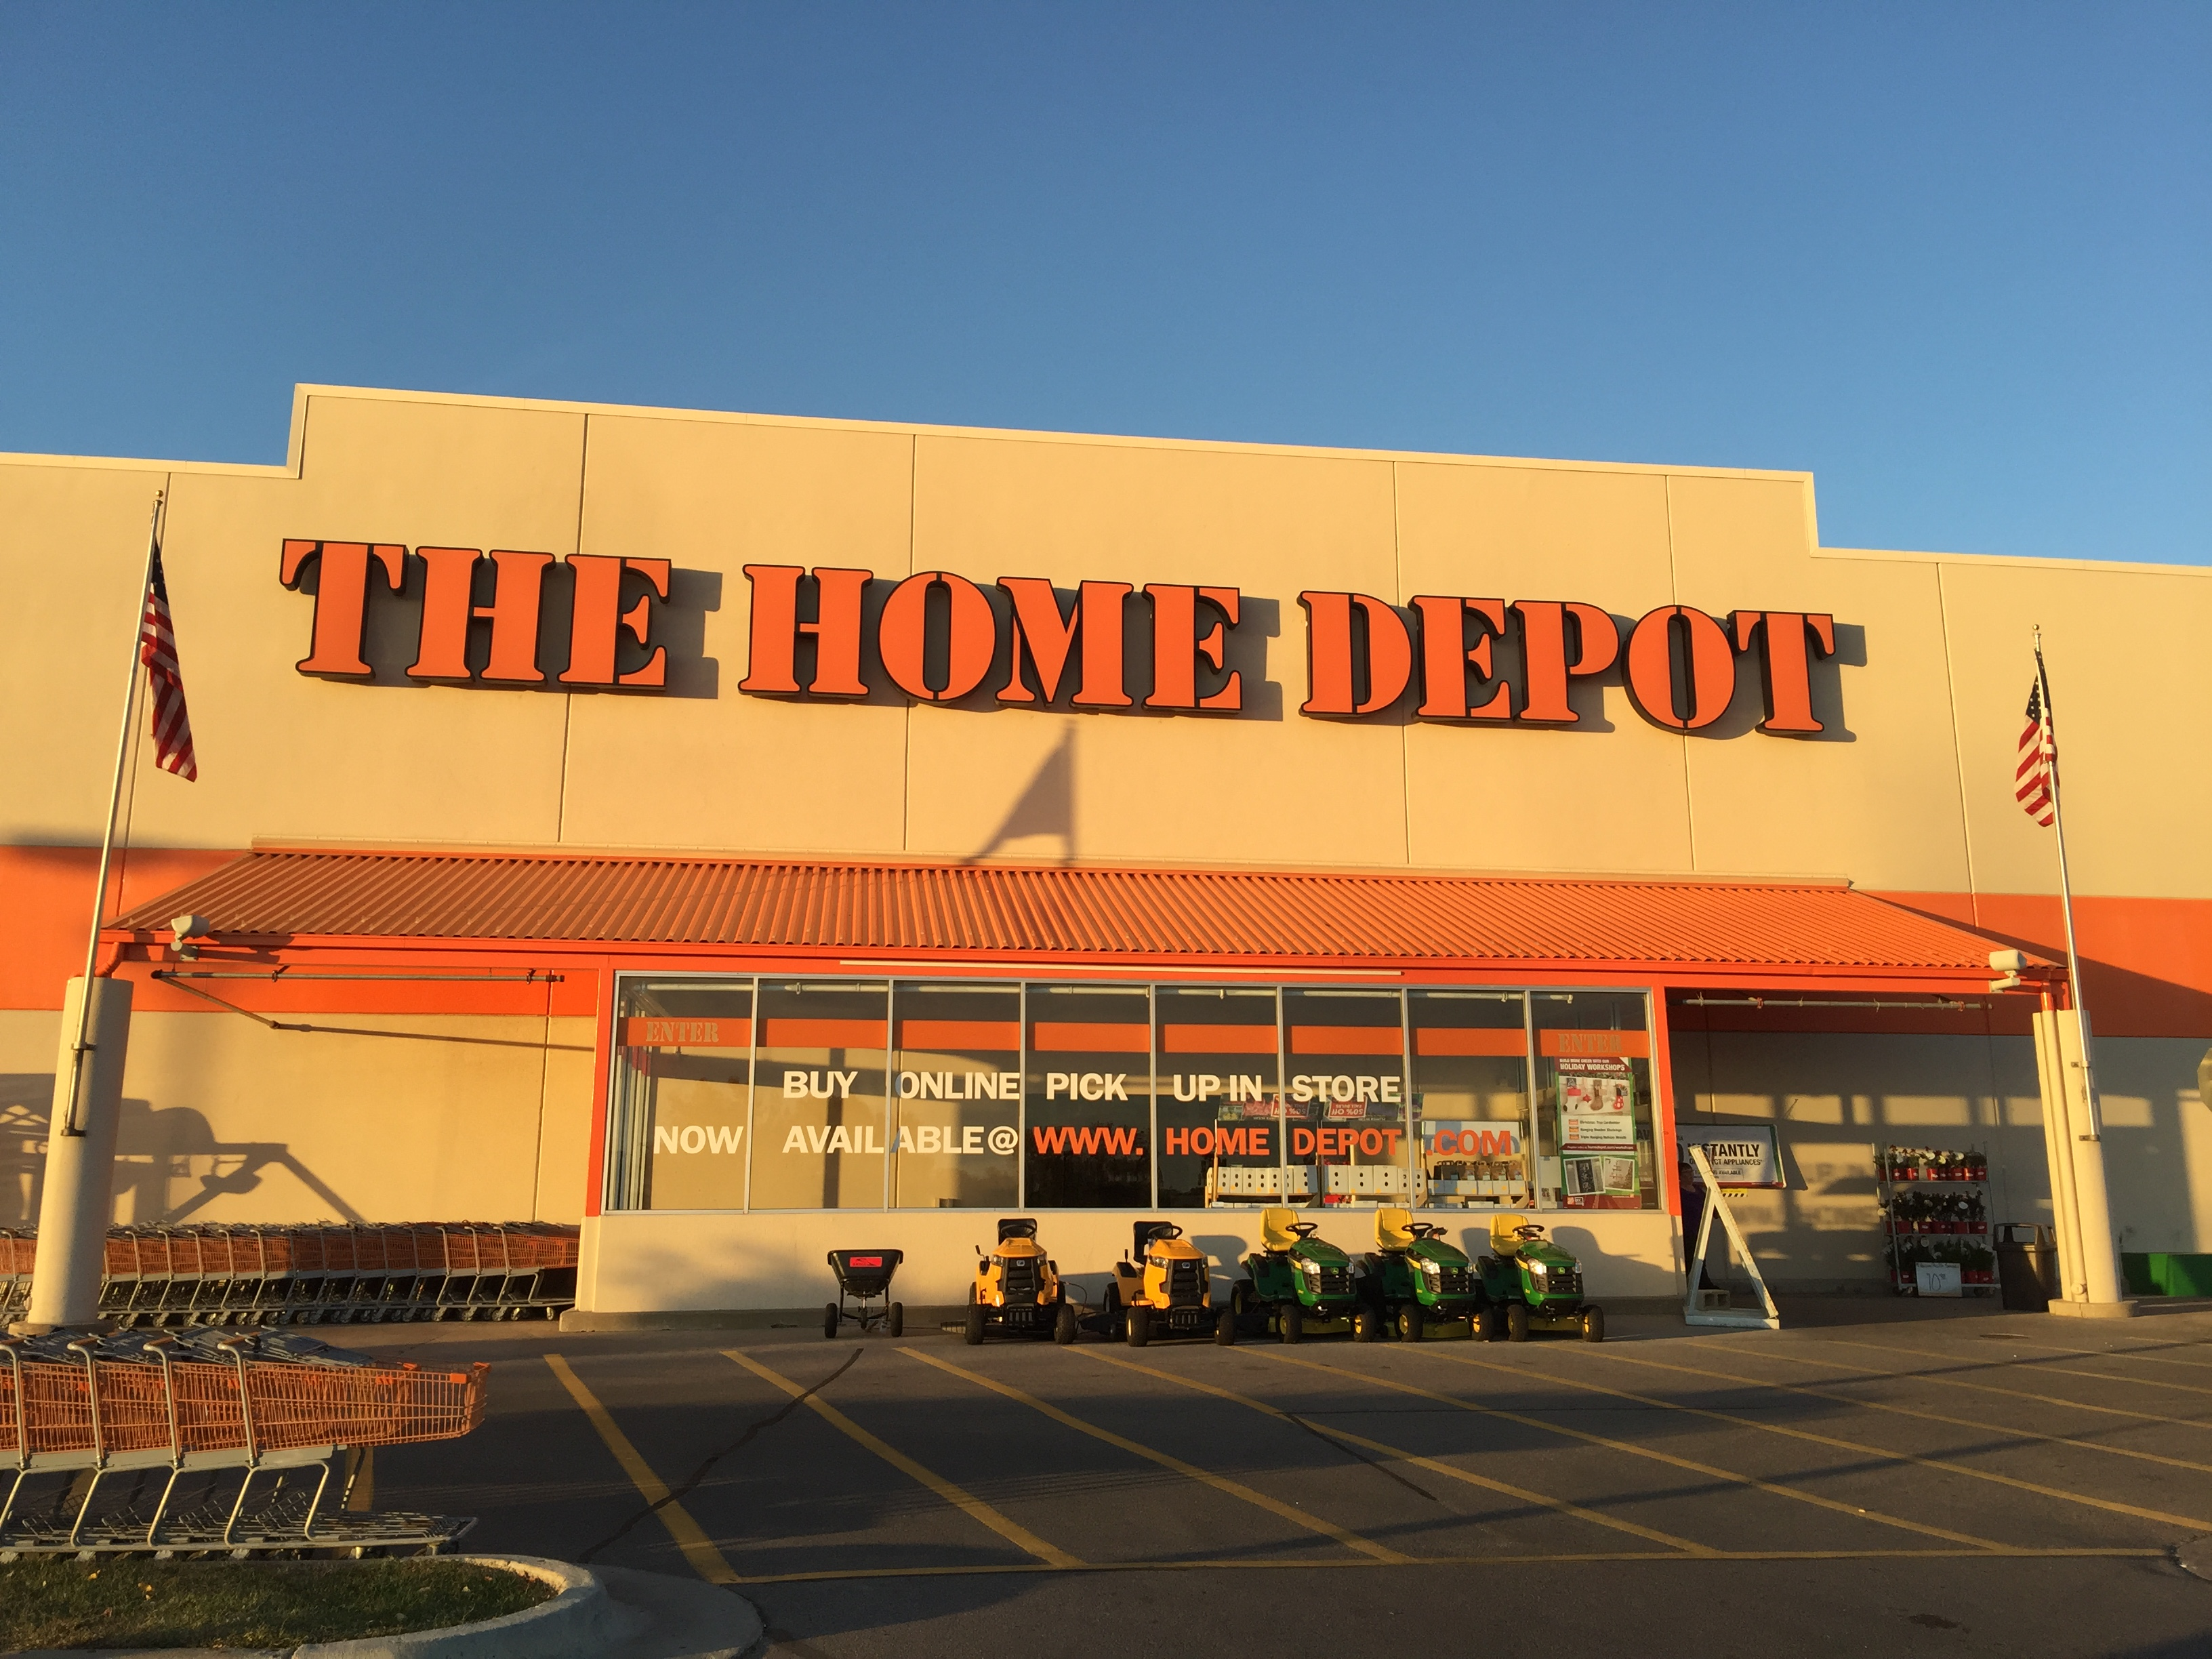 The home depot in wichita ks whitepages Home bar furniture wichita ks